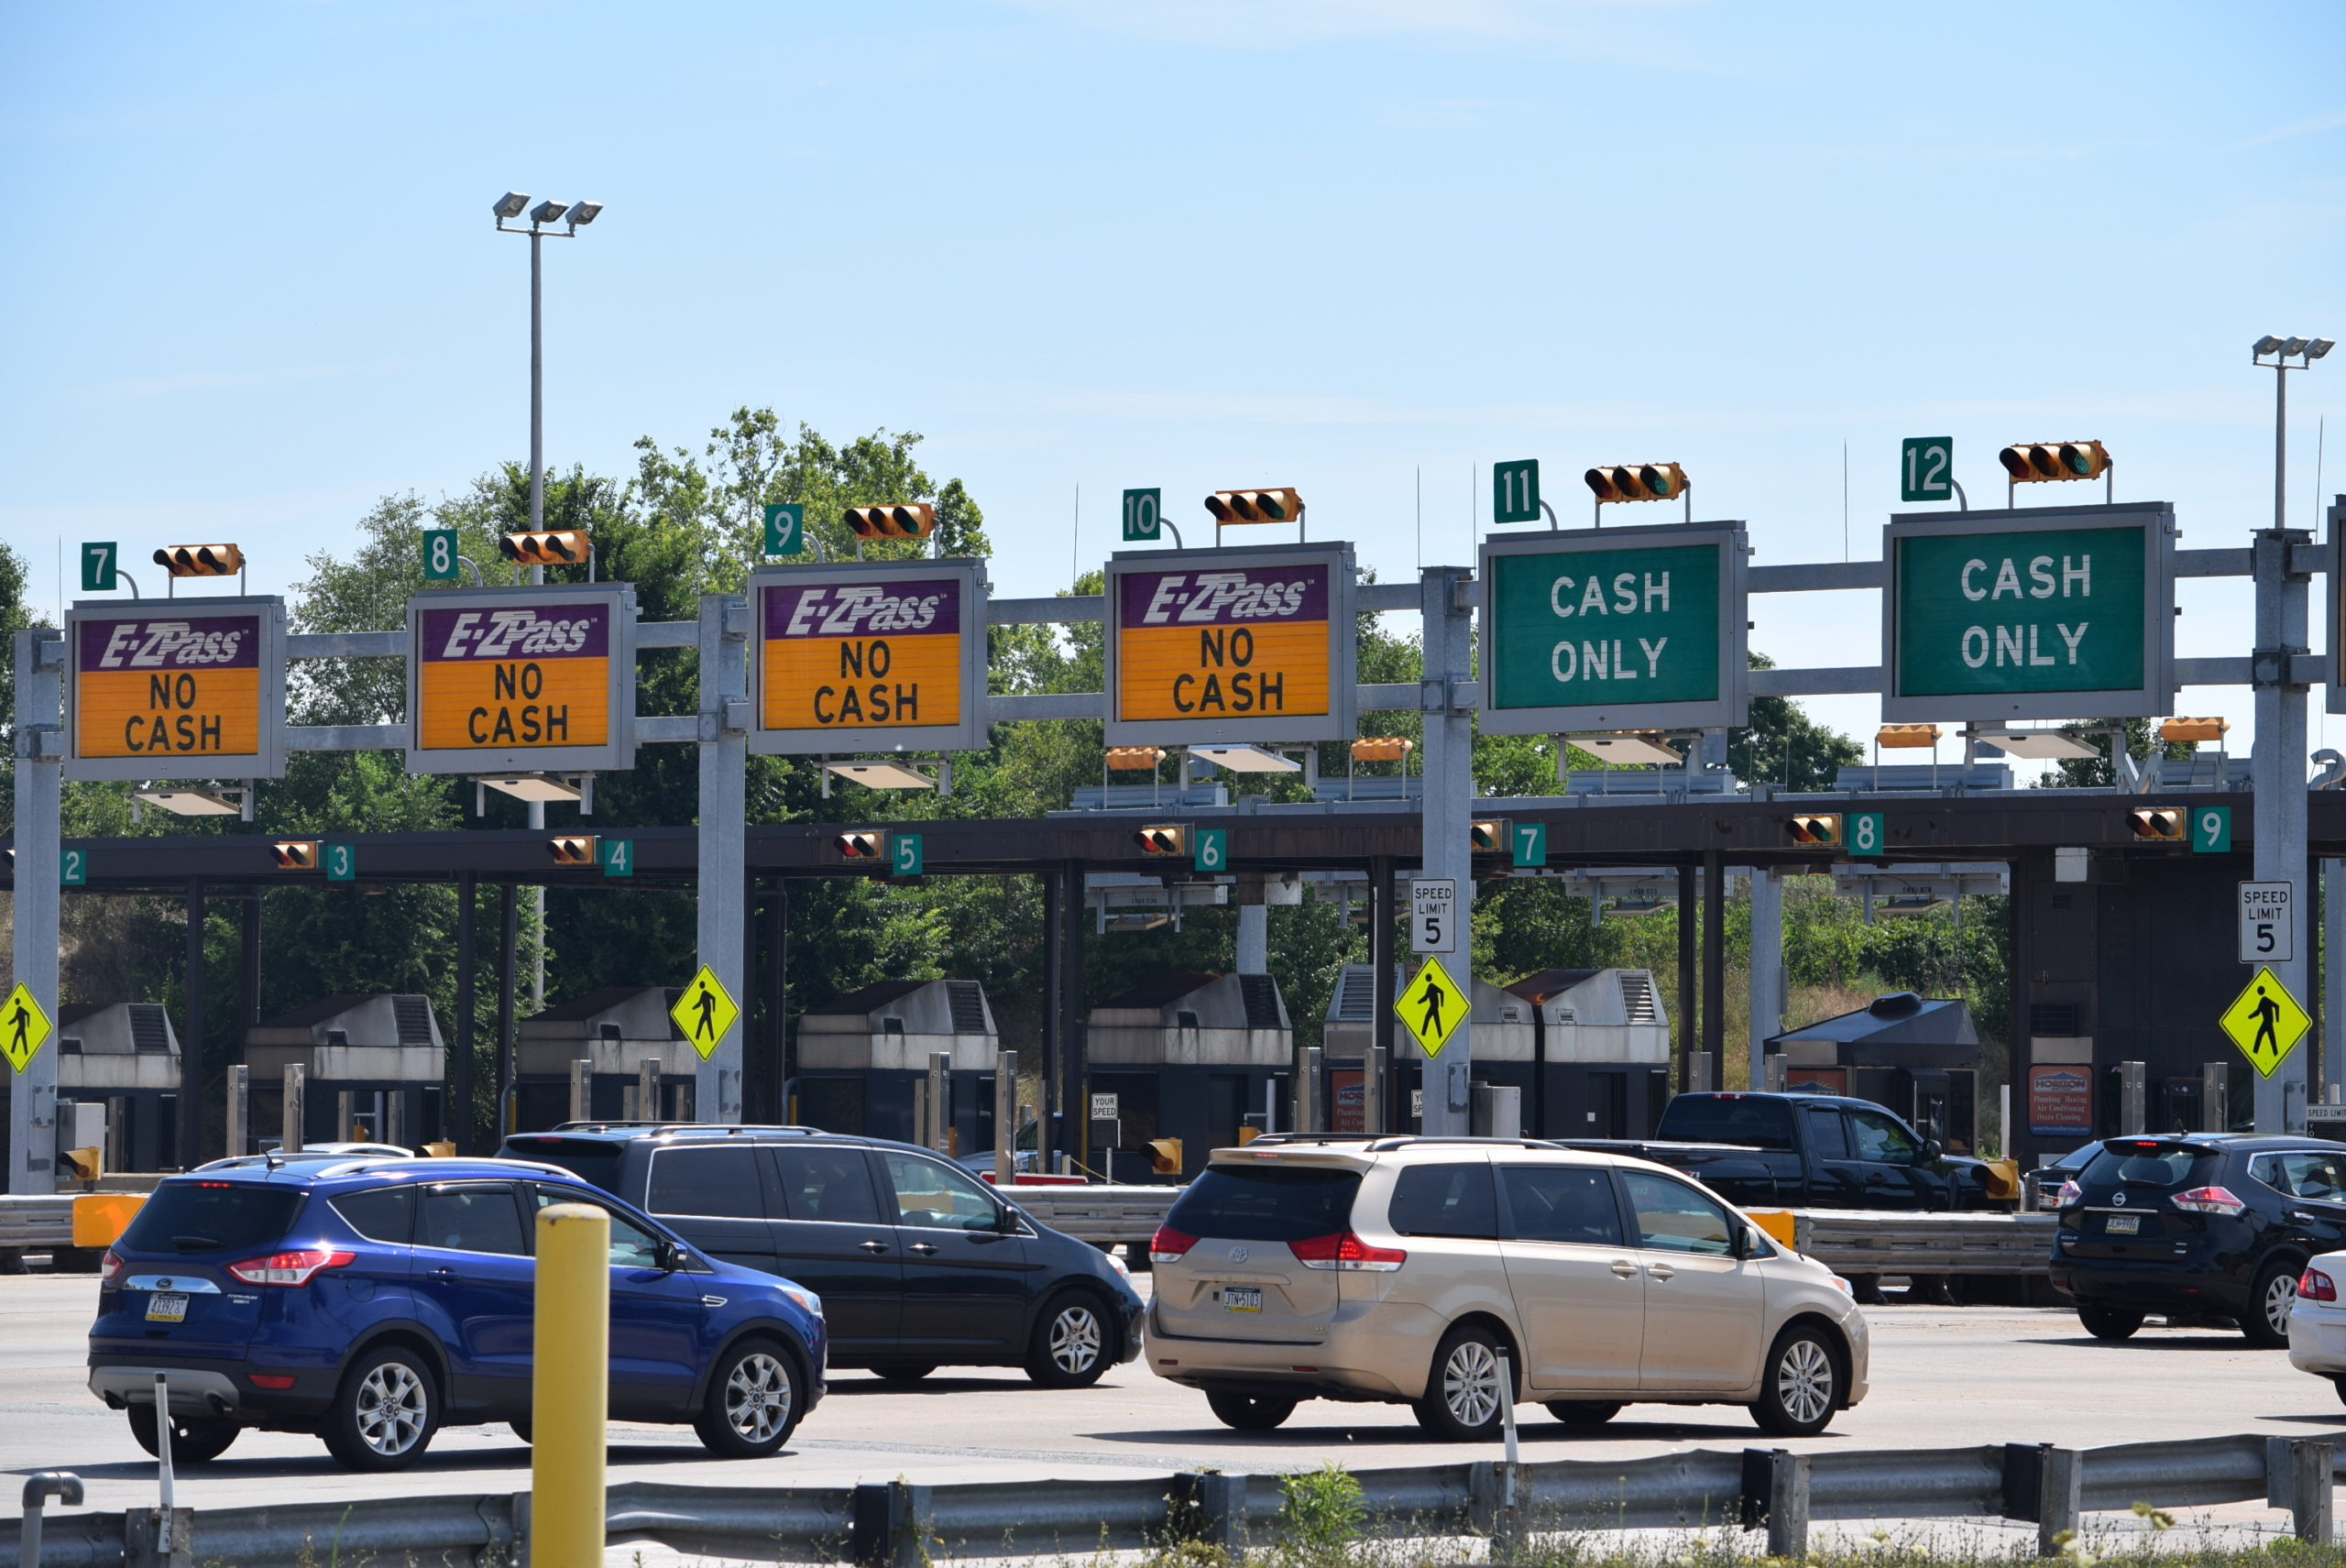 Pennsylvania Turnpike to Have Cashless Toll System by Fall of 2021